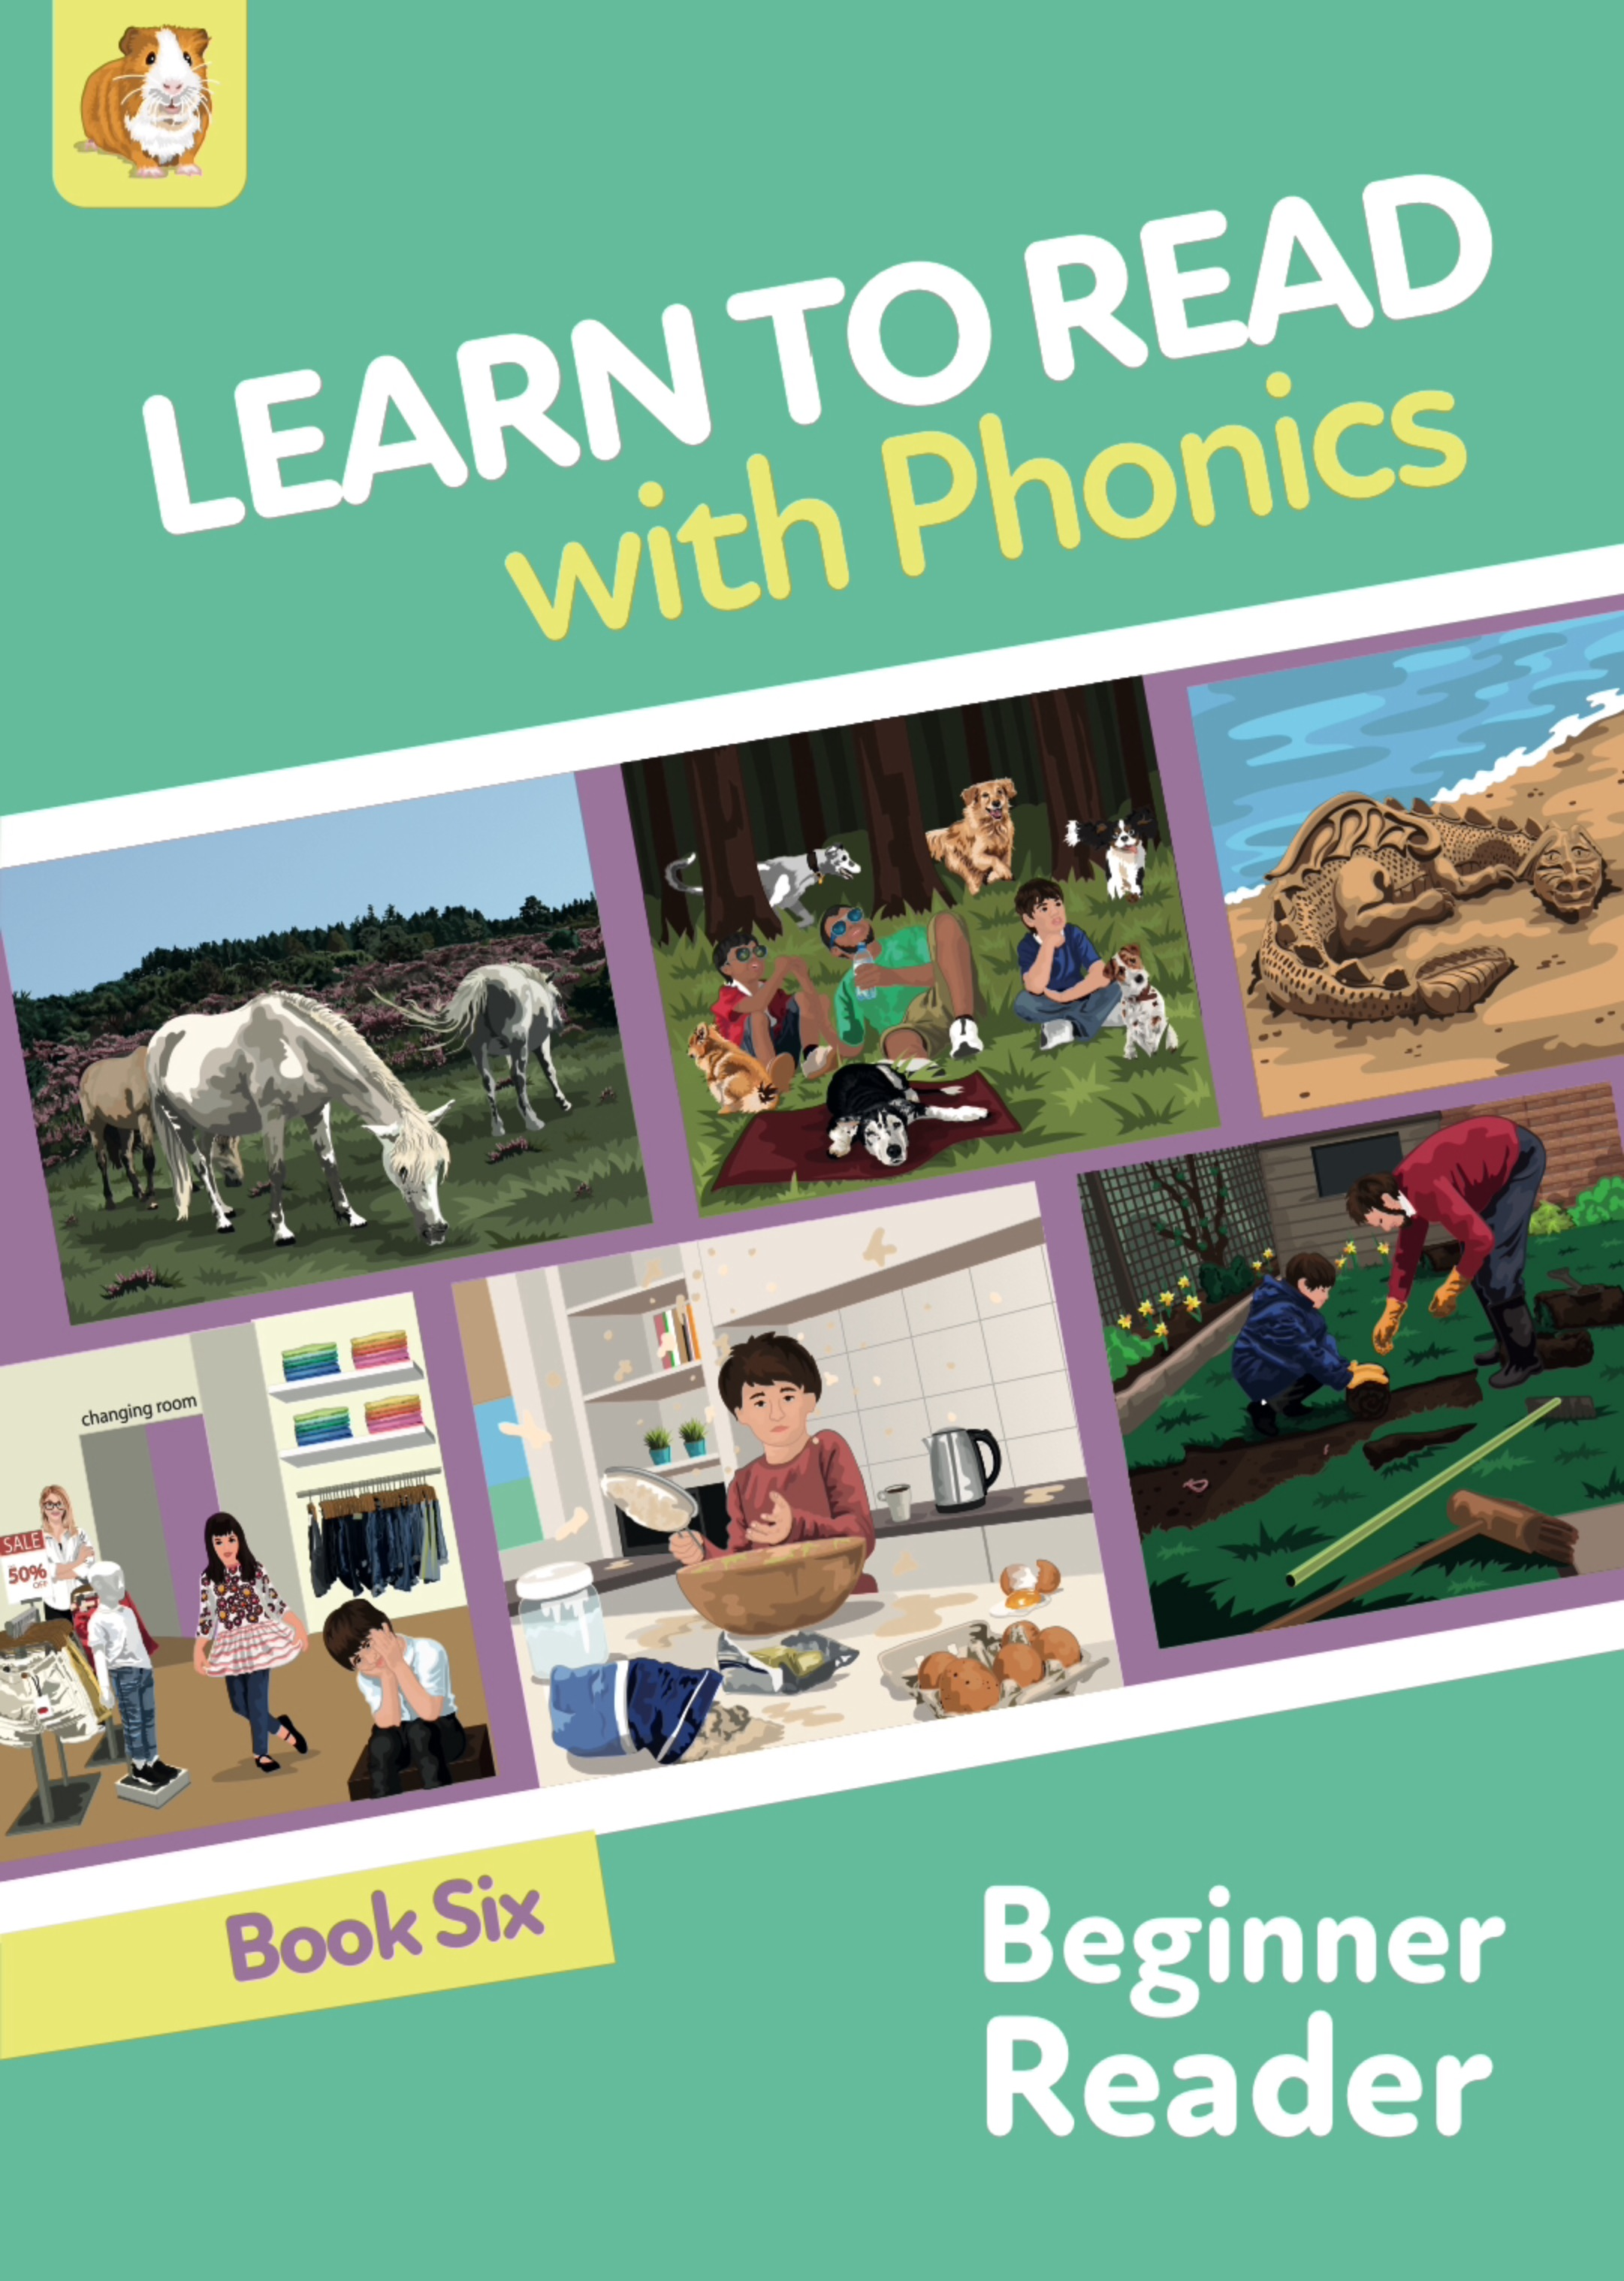 Learn To Read Rapidly With Phonics: Beginner Reader Book 6: Digital Download